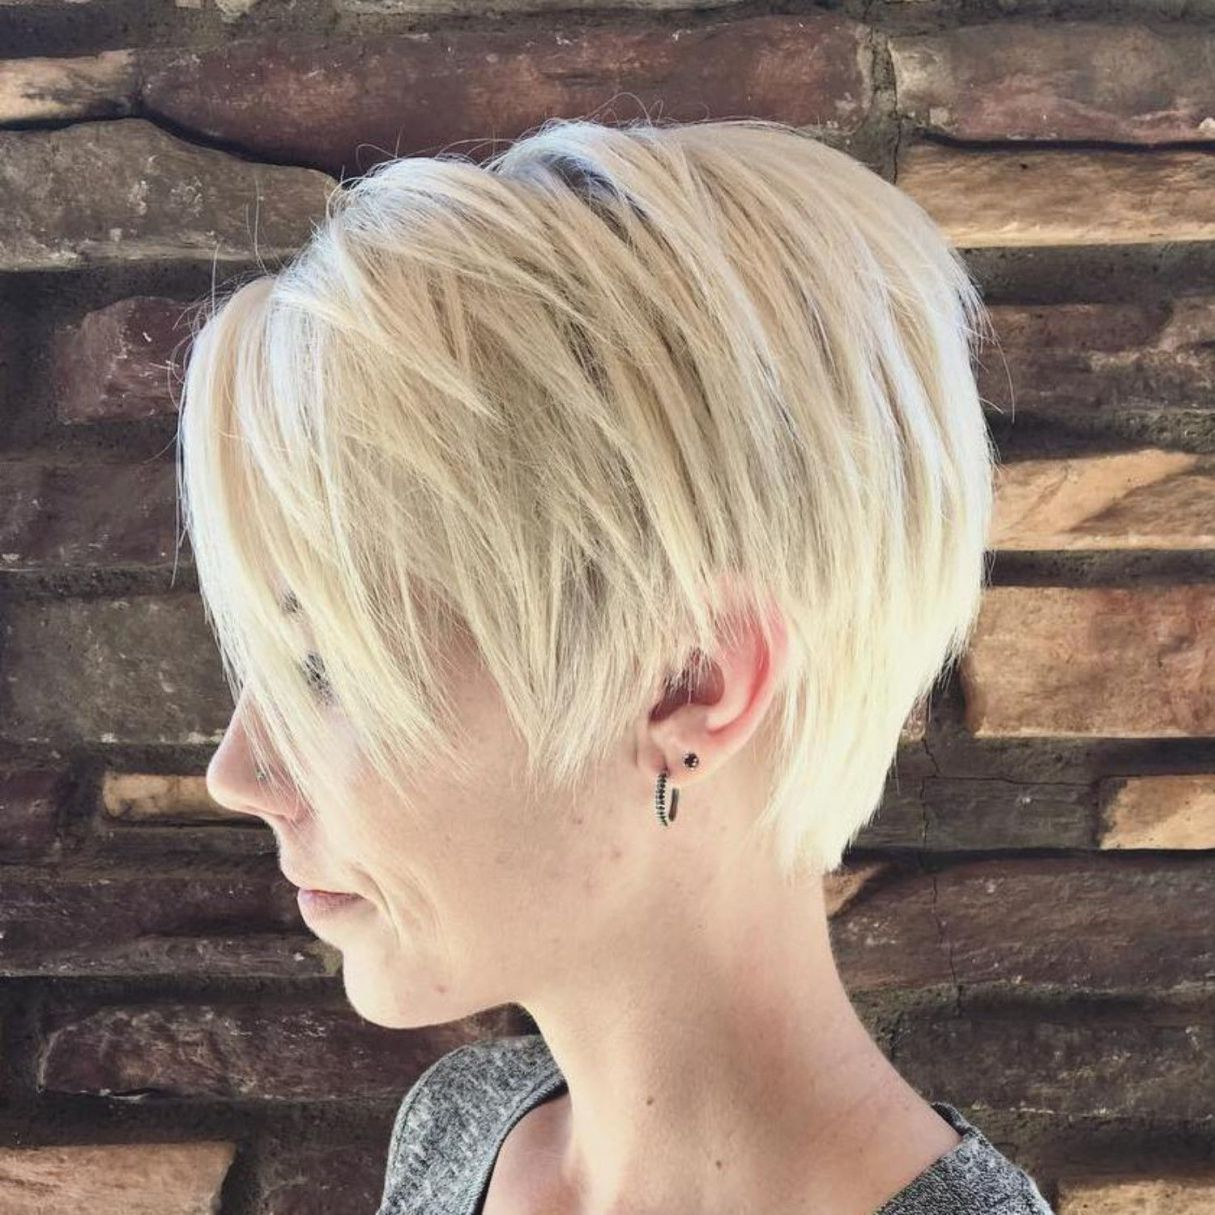 Nose piercing day 3   MindBlowing Short Hairstyles for Fine Hair  Beauty  Pinterest